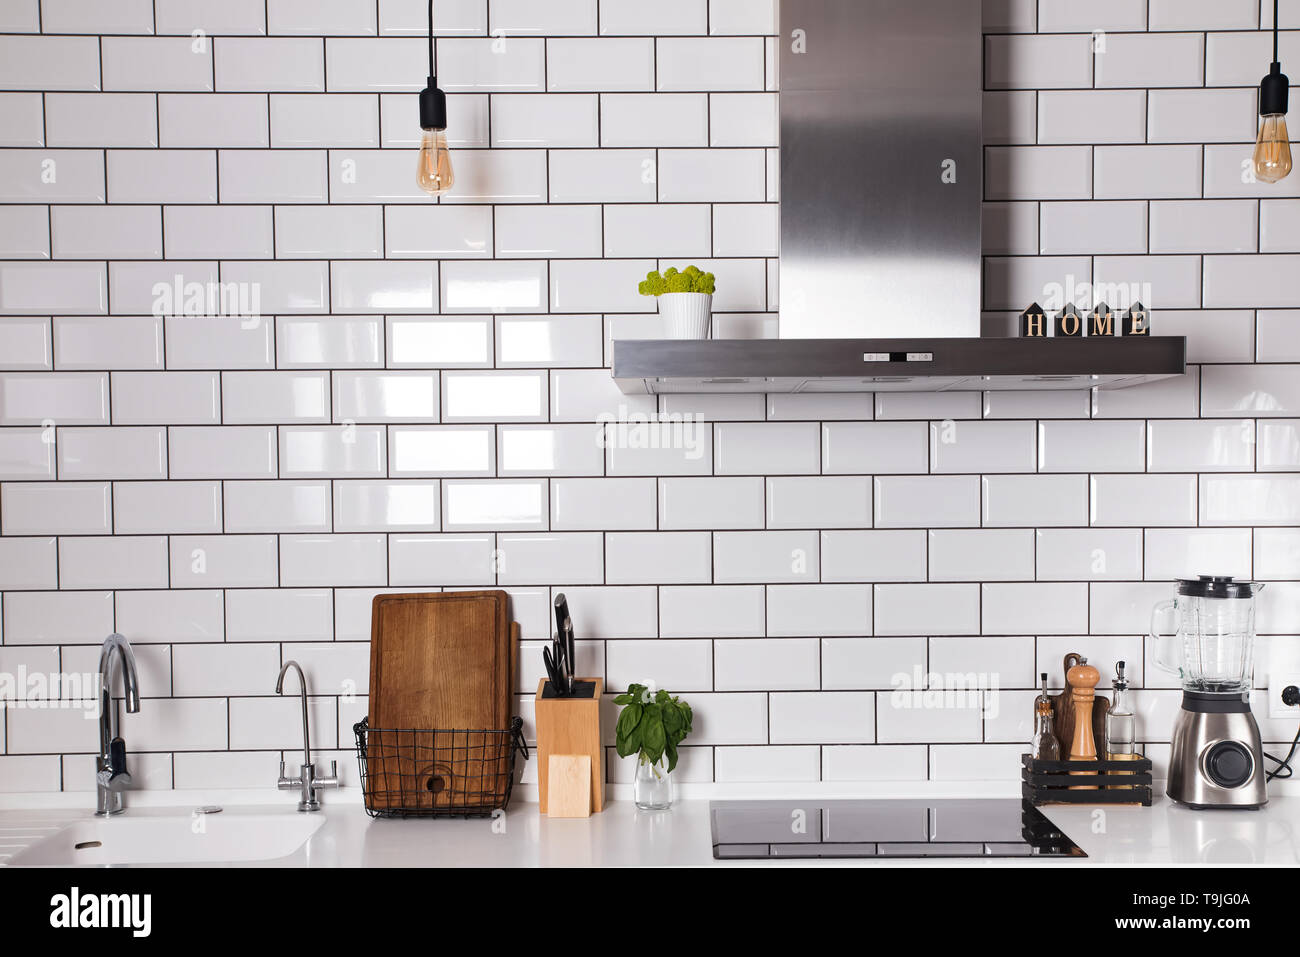 Modern Kitchen With Brick White Tile Wall And Differet Utensils On The Counter Stock Photo Alamy